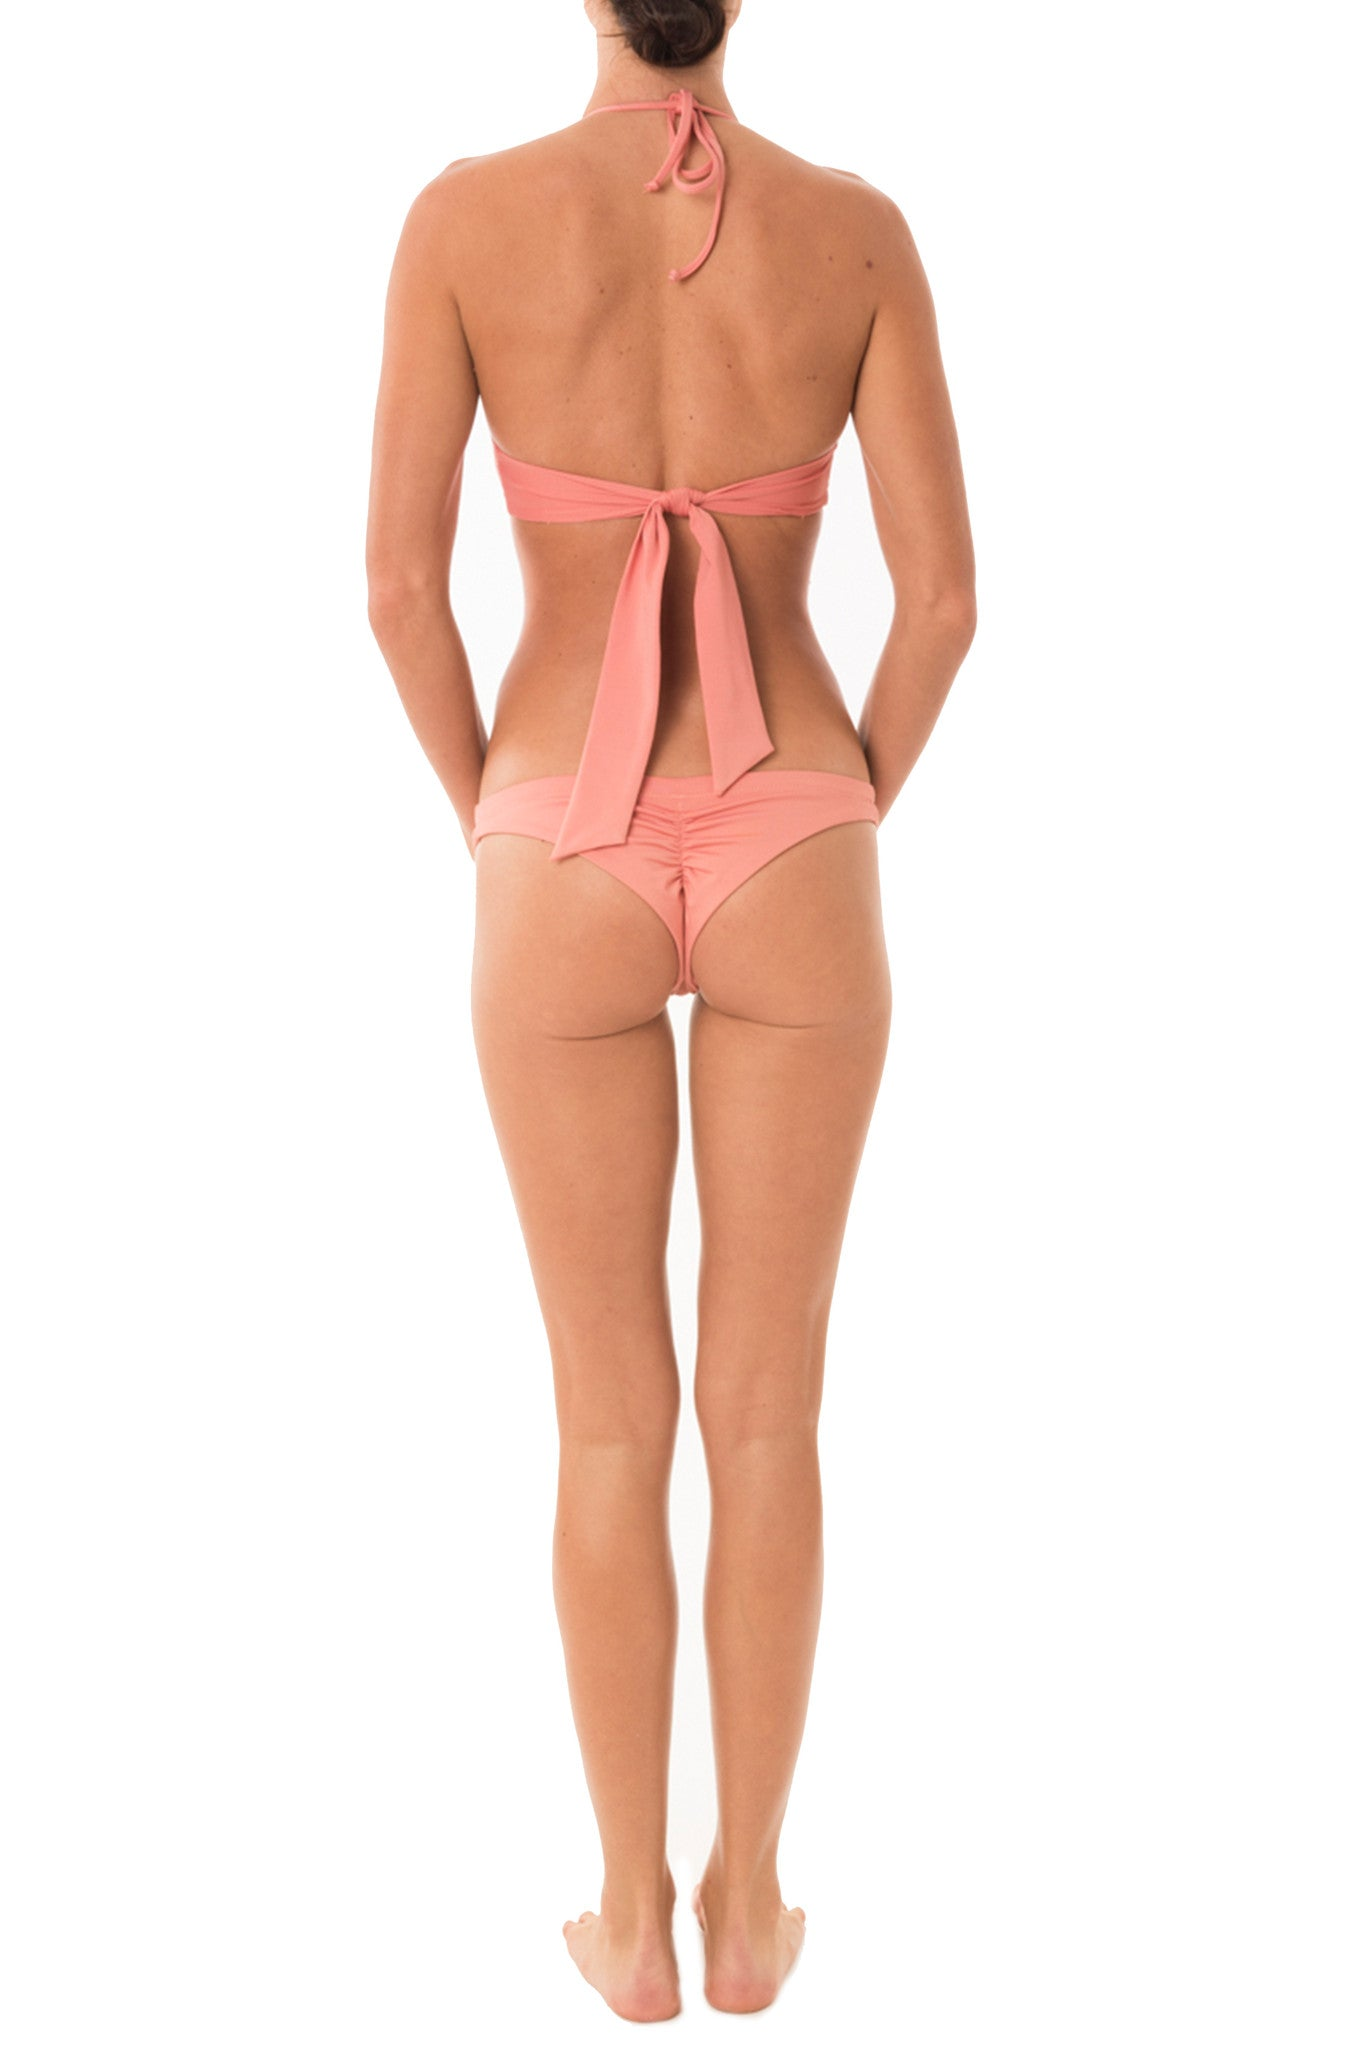 Skimpi Scoop Halter in Flamingo (1 left)